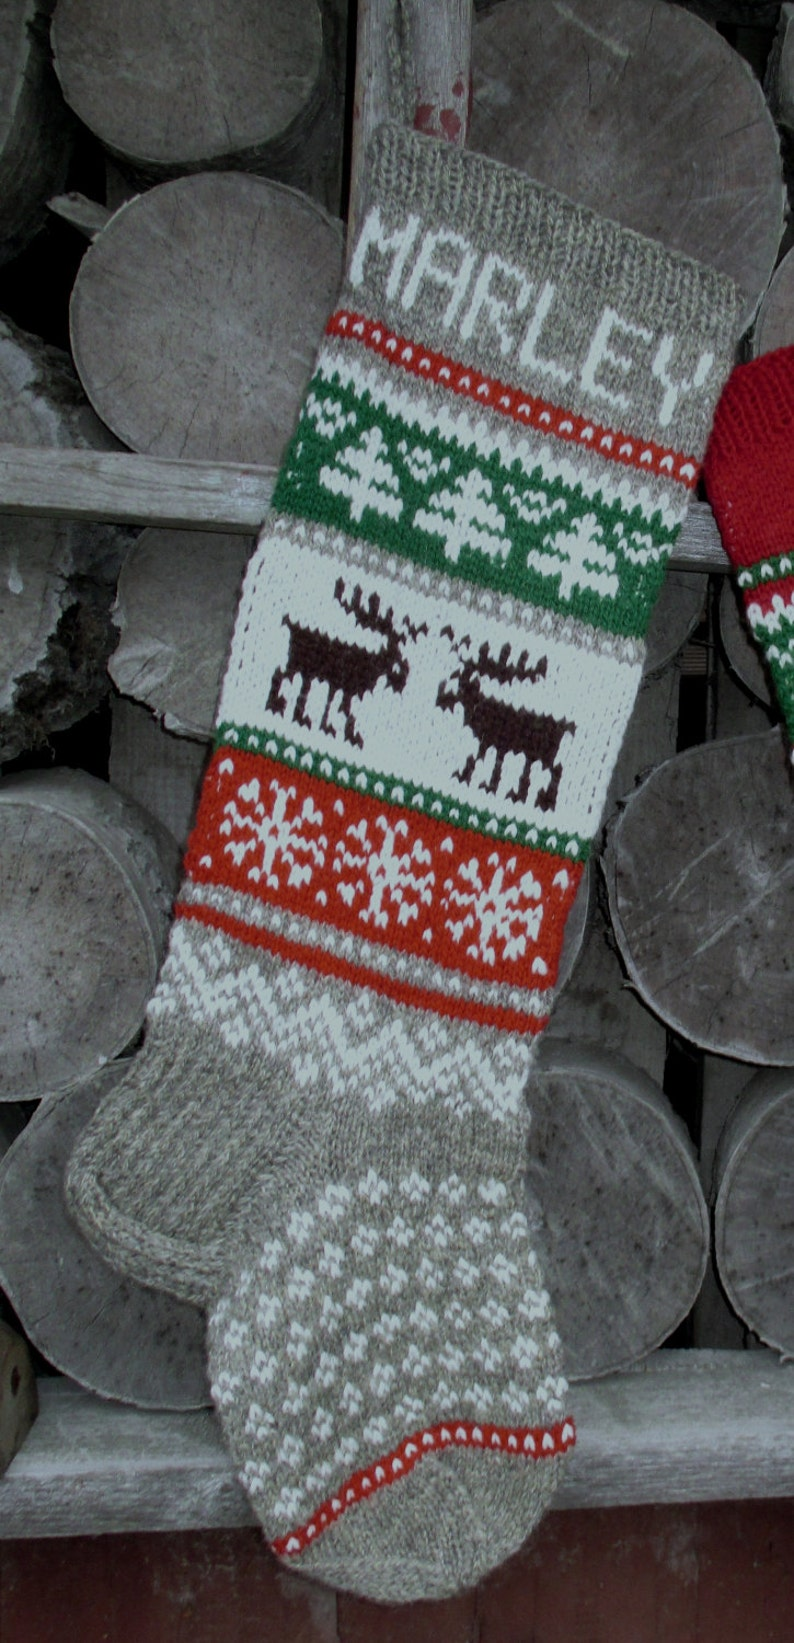 Knit Christmas Stockings 24 or 26 Personalized Hand knit Wool Gray Red White Blue Green with Deer Moose Reindeer Nordic